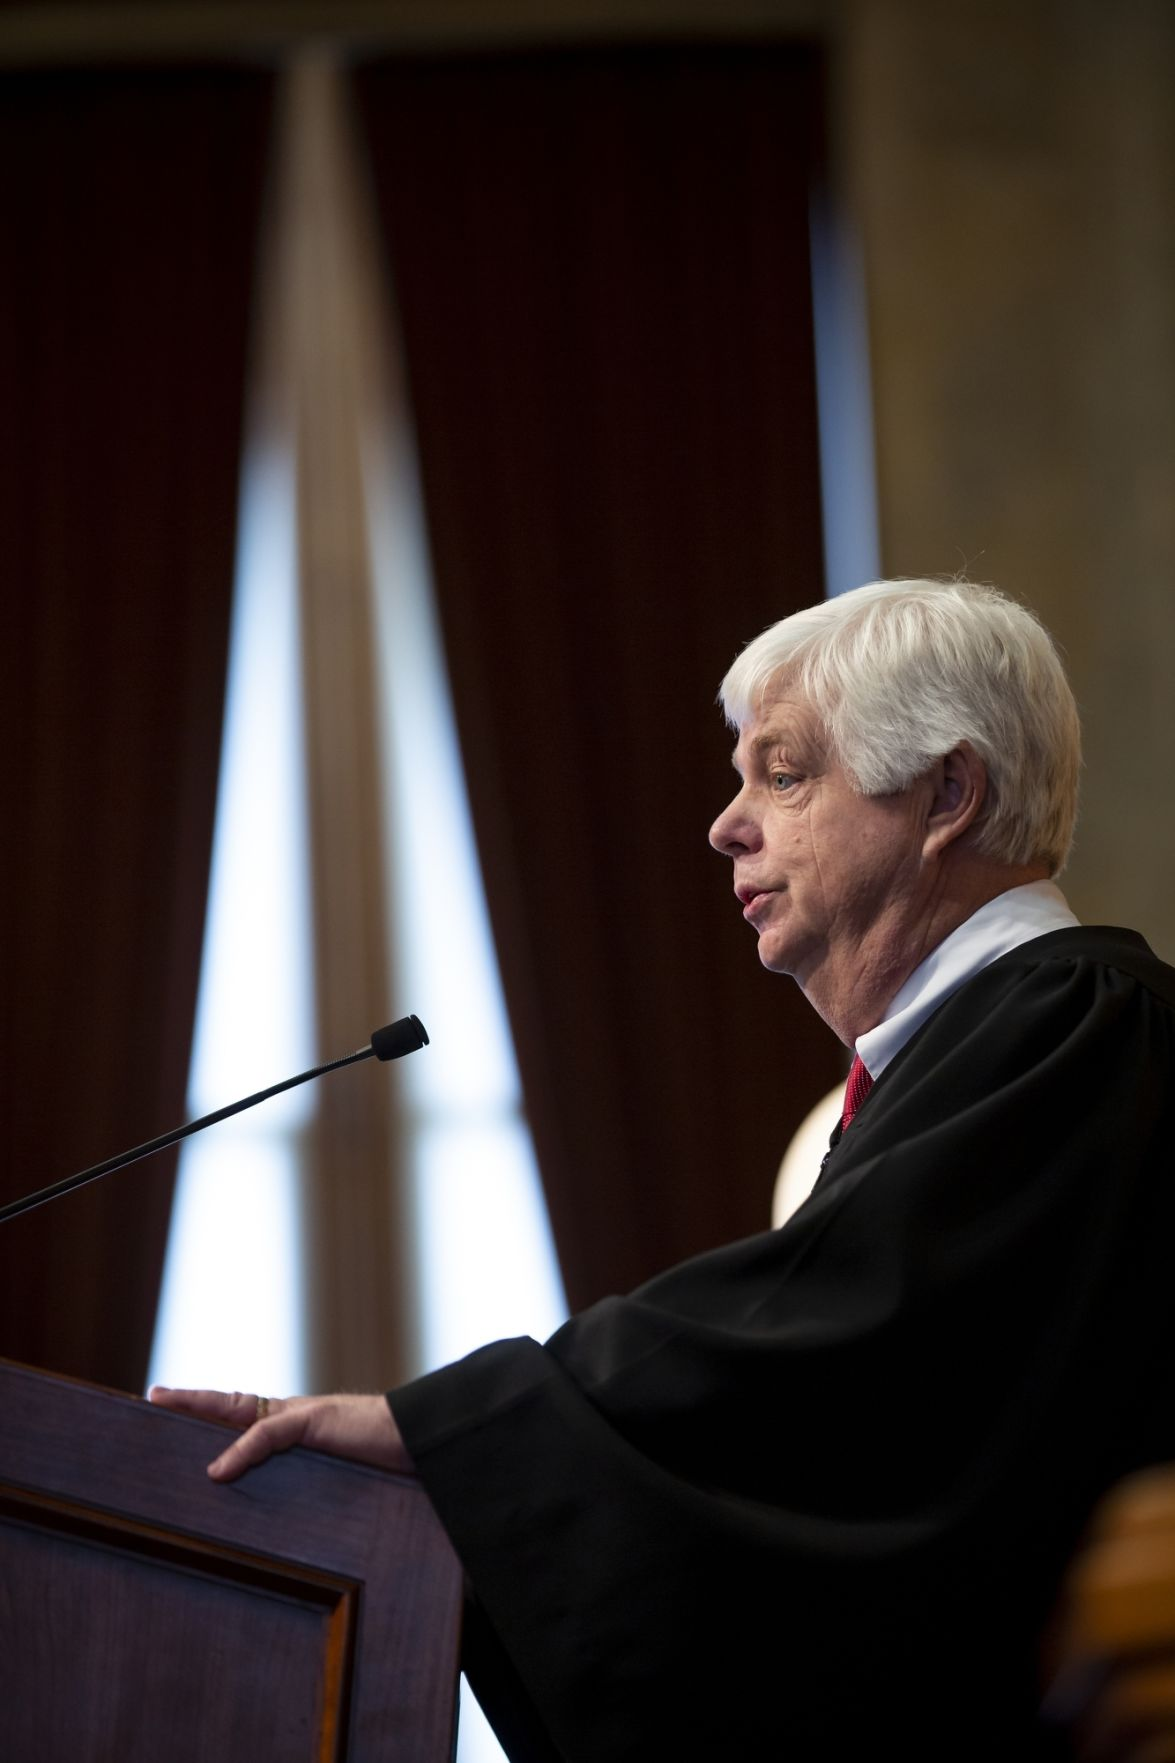 Acting Iowa chief justice: Court independence a strength 1